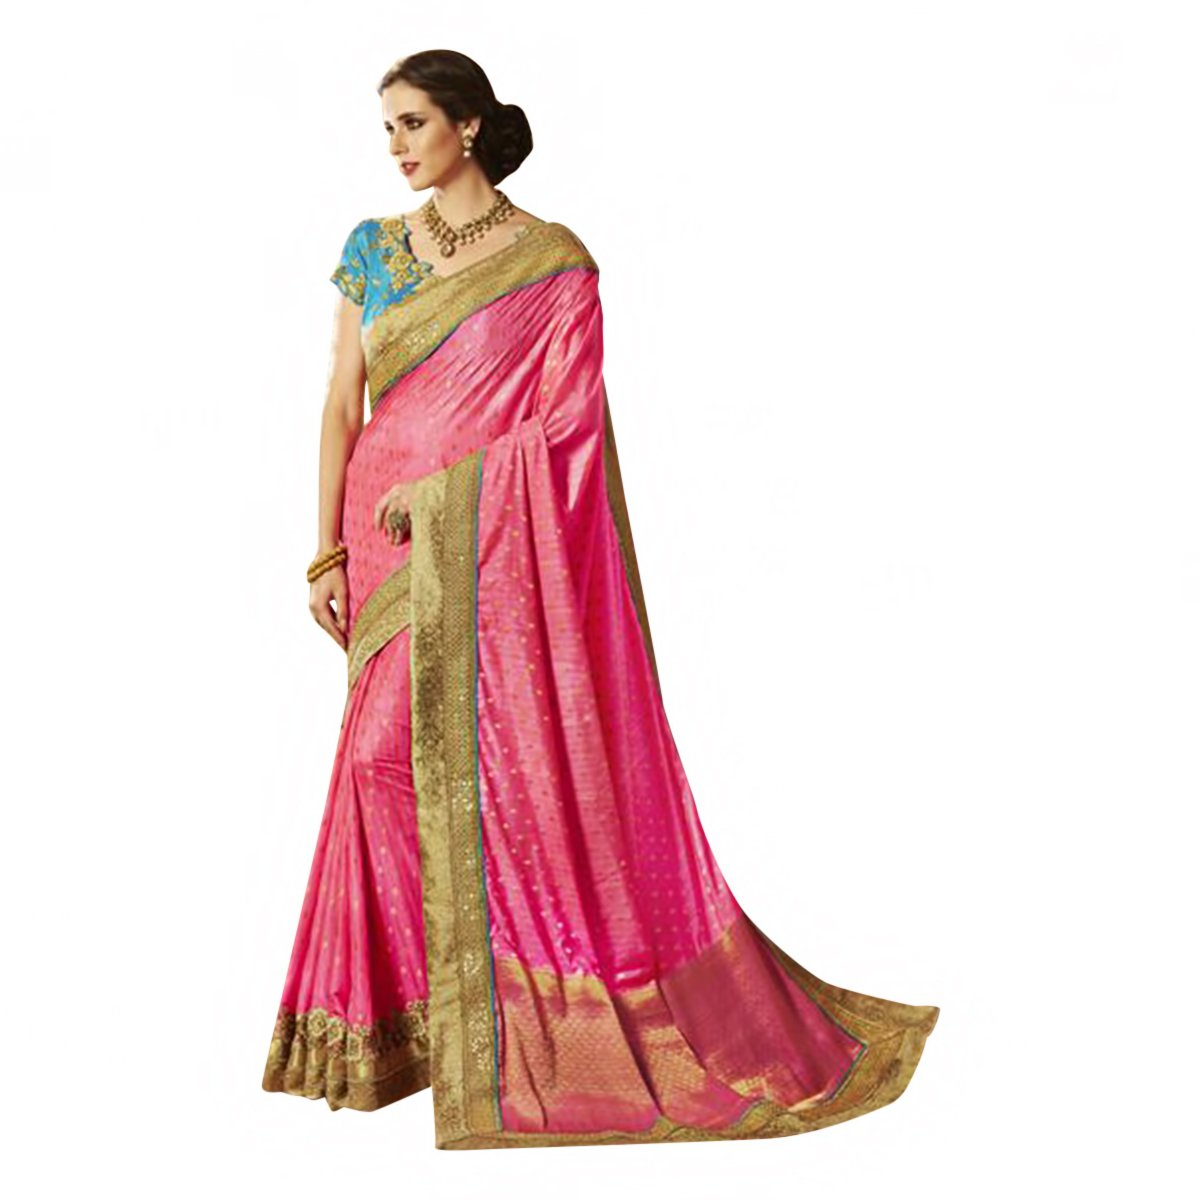 New Launch Bridal Silk Saree Sari Collection Blouse Wedding Party Wear Ceremony Women Muslim eid 586 18